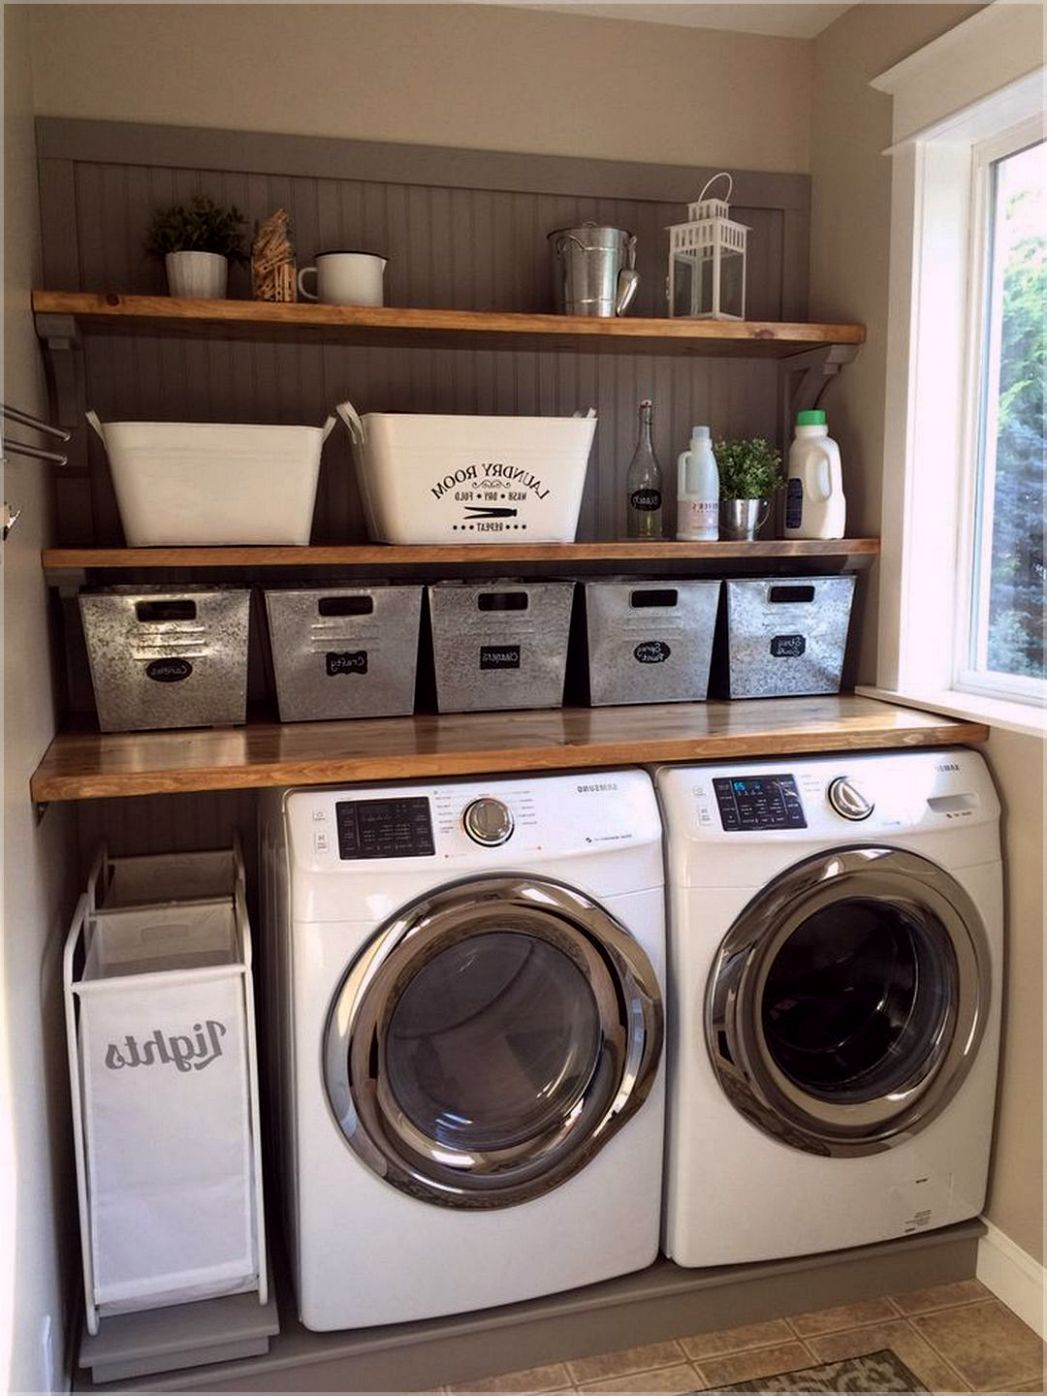 12 Remarkable Laundry Room Layout Ideas for The Perfect Home Drop ...